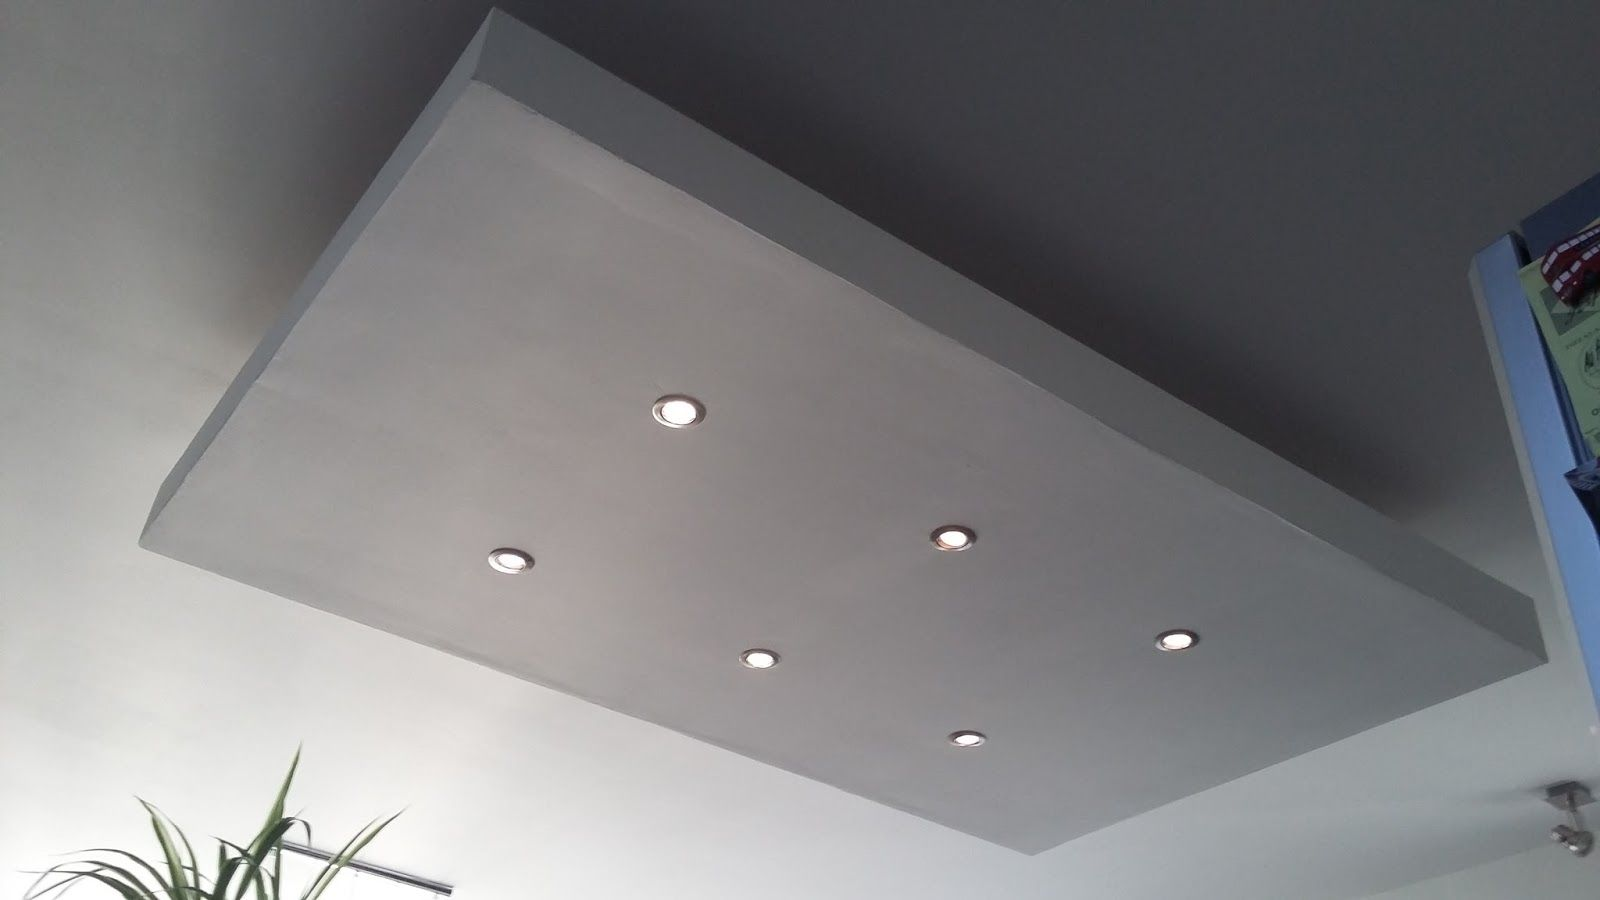 D roch plafond descendu suspendu ilot central for Plafond de cuisine design